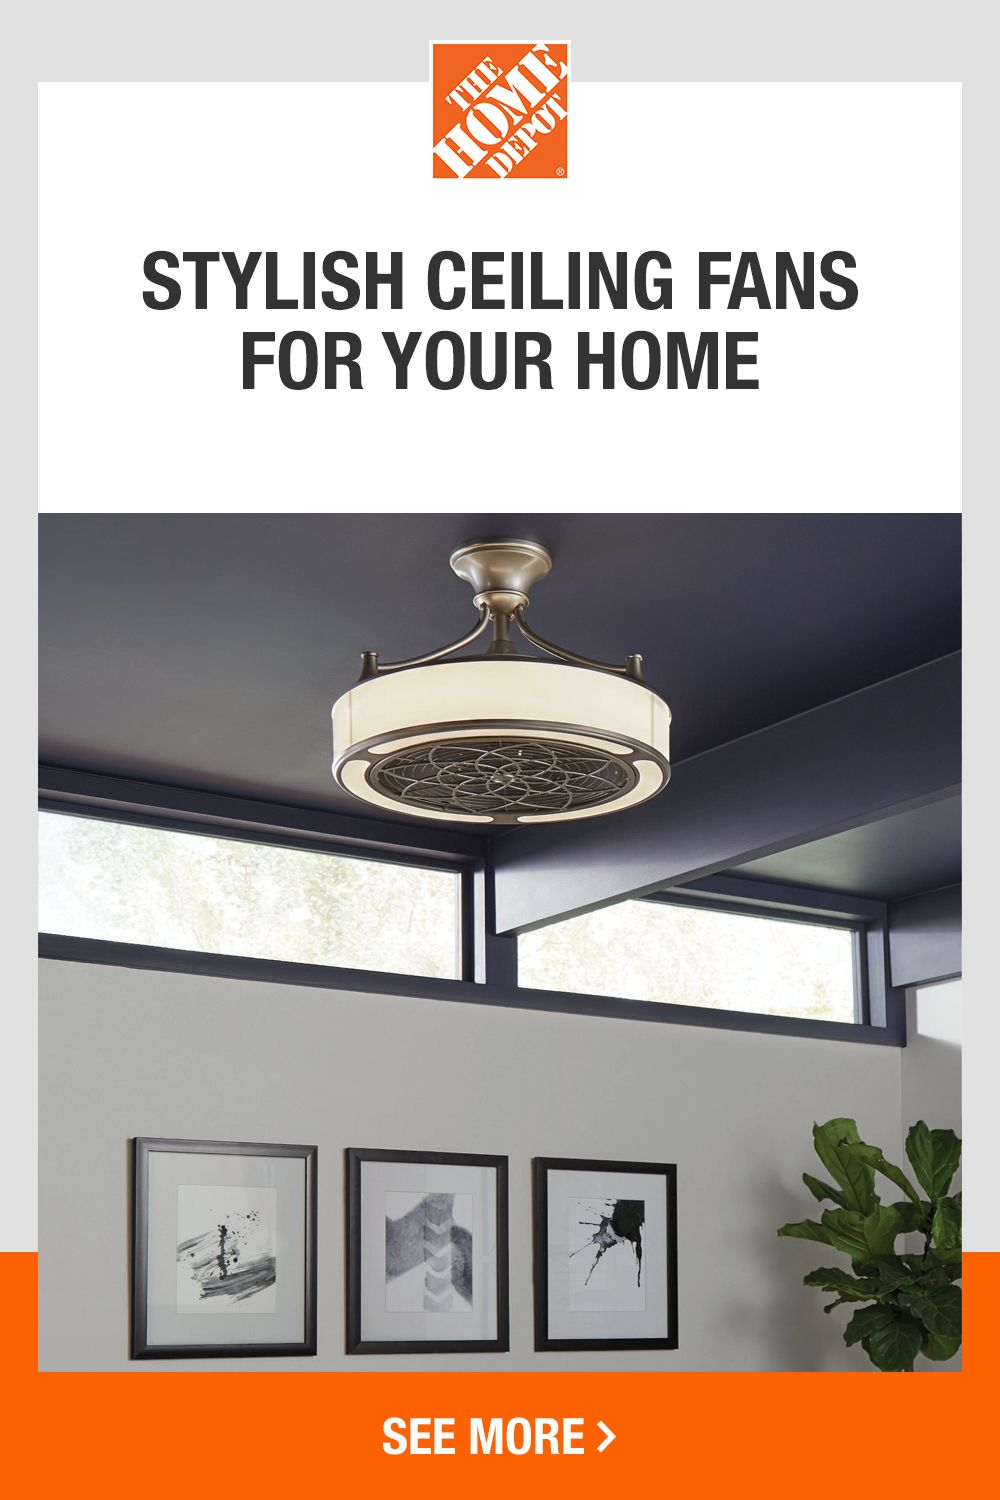 Best Outdoor Ceiling Fans 2021 Pin on 2020 2021